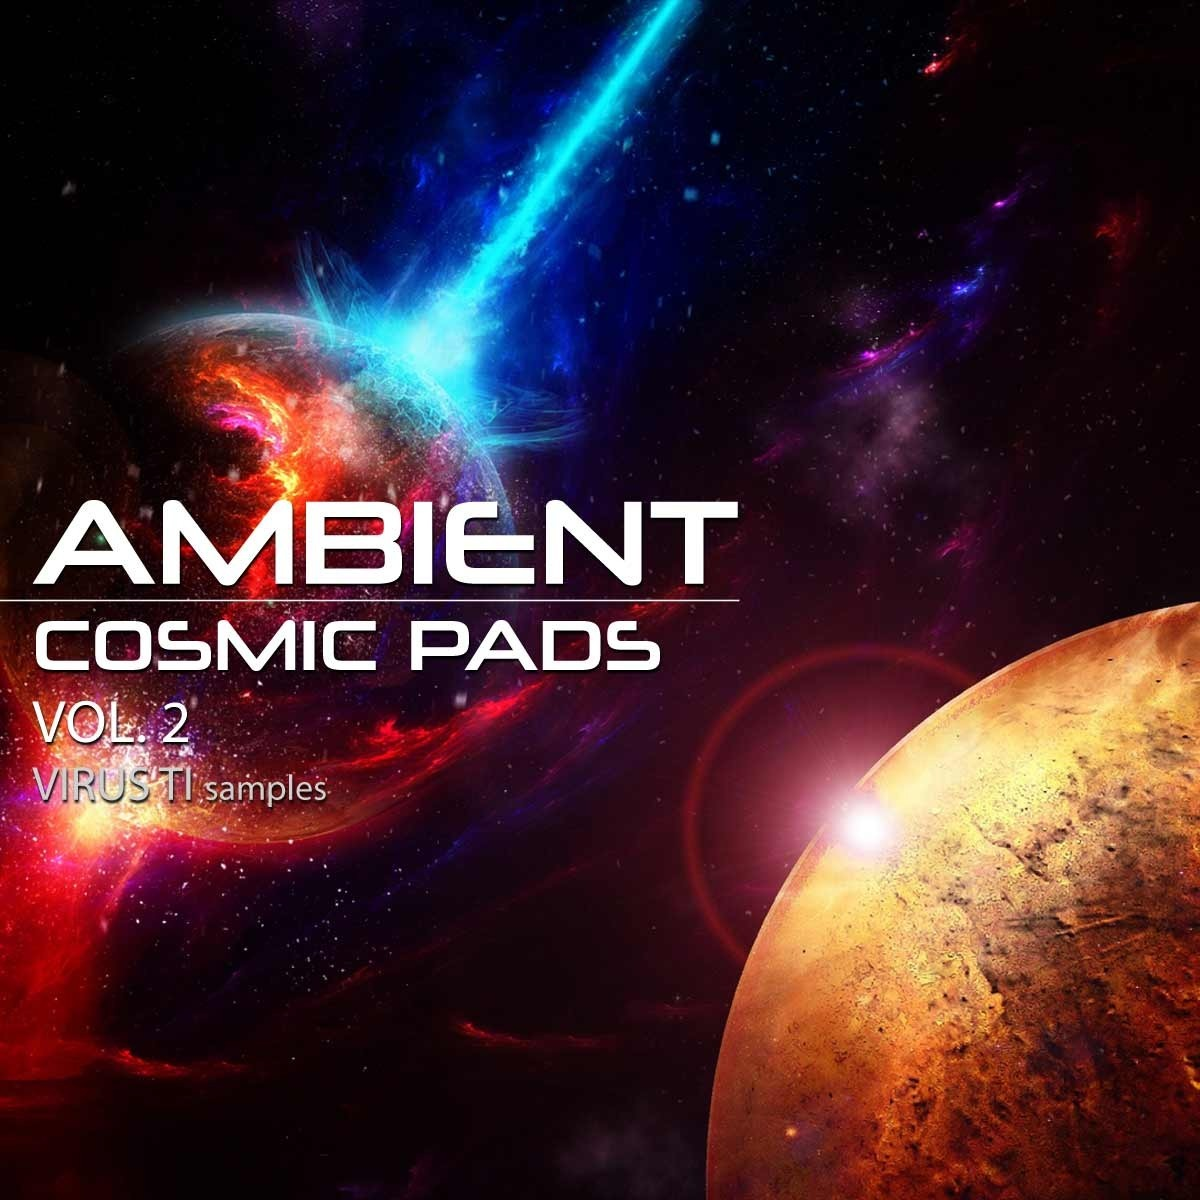 Ambient Cosmic Pads Vol 2